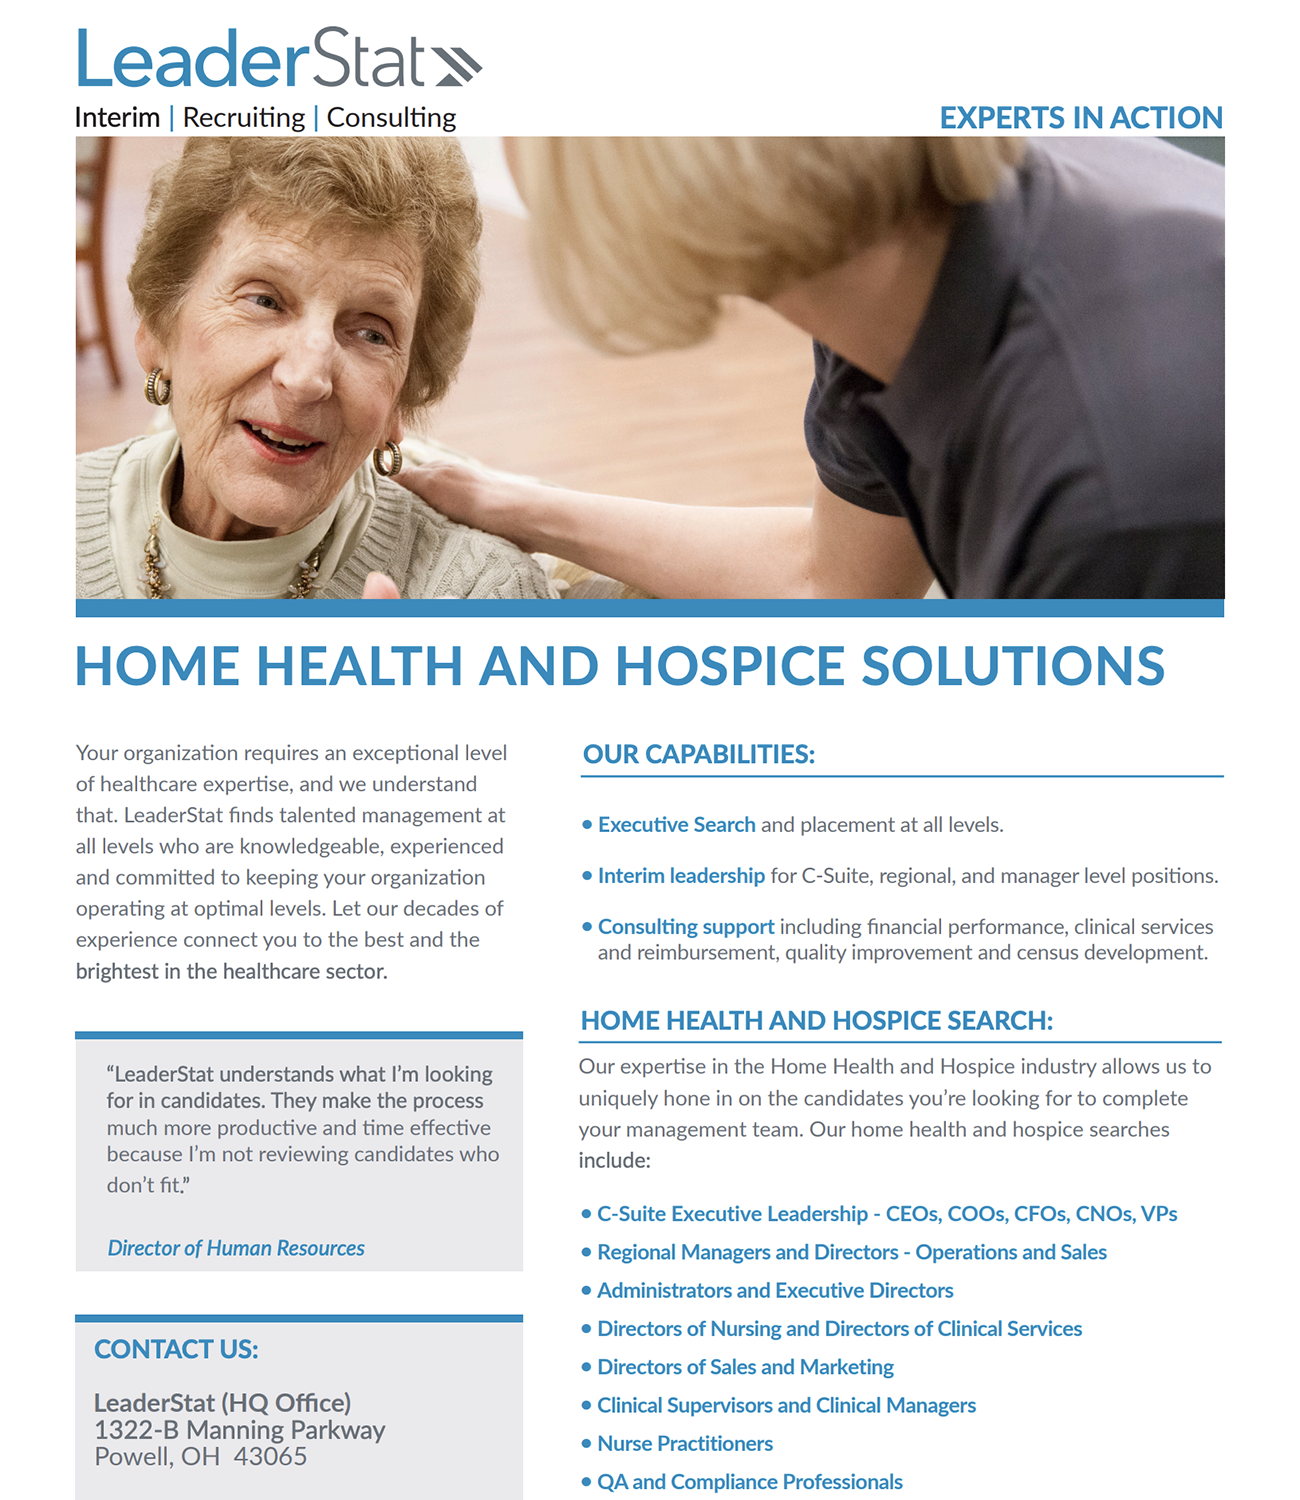 home health and hospice